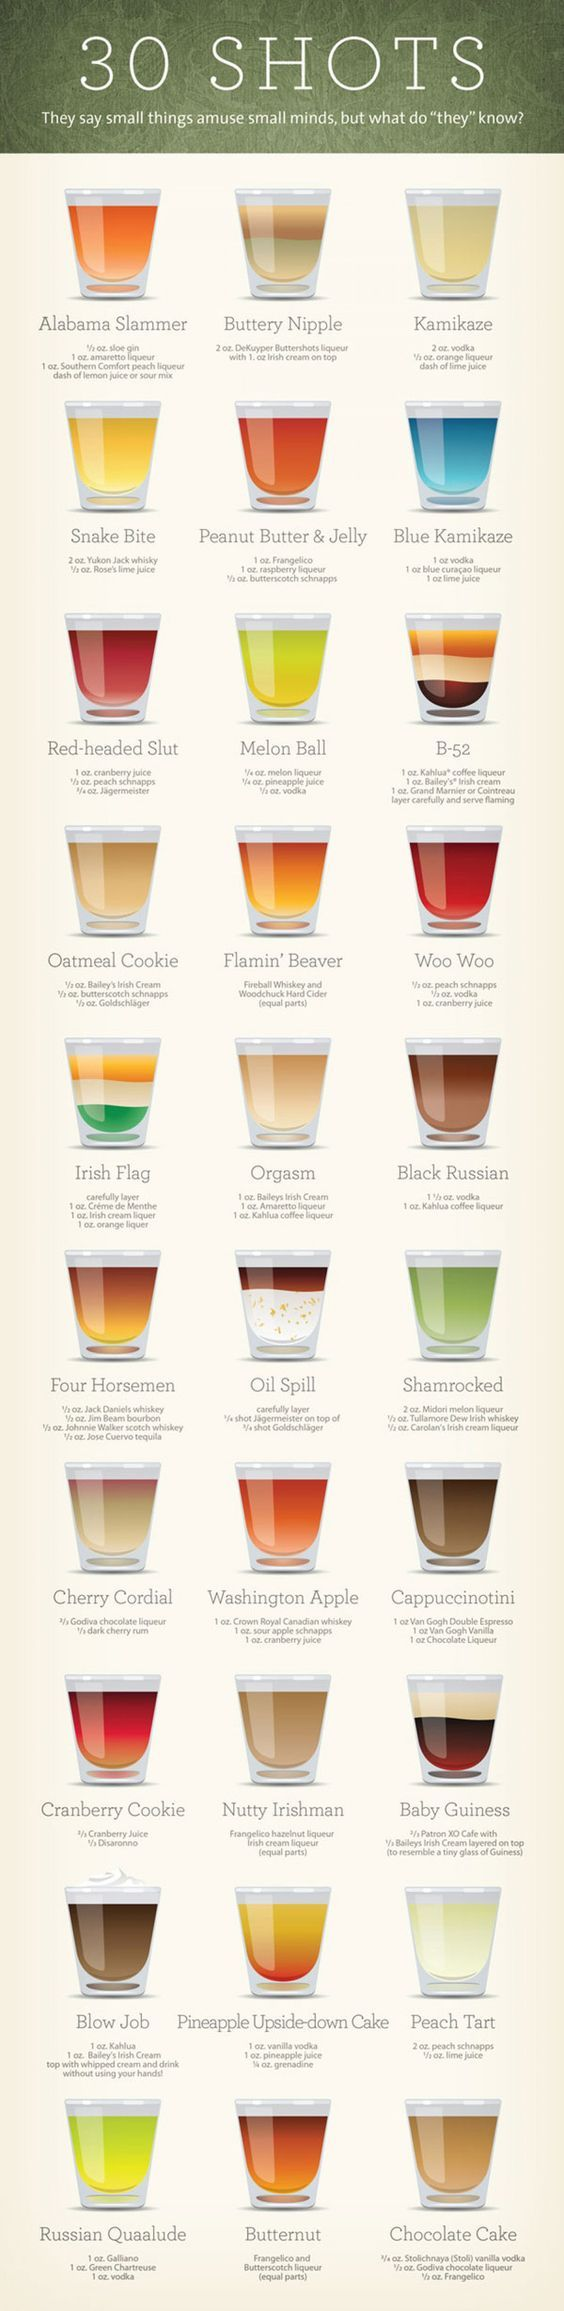 30 Shots Infographic | I think this may cover any obscure liquor or liqueur you may have collecting dust in the back of your liquor shelf/cabinet ;):